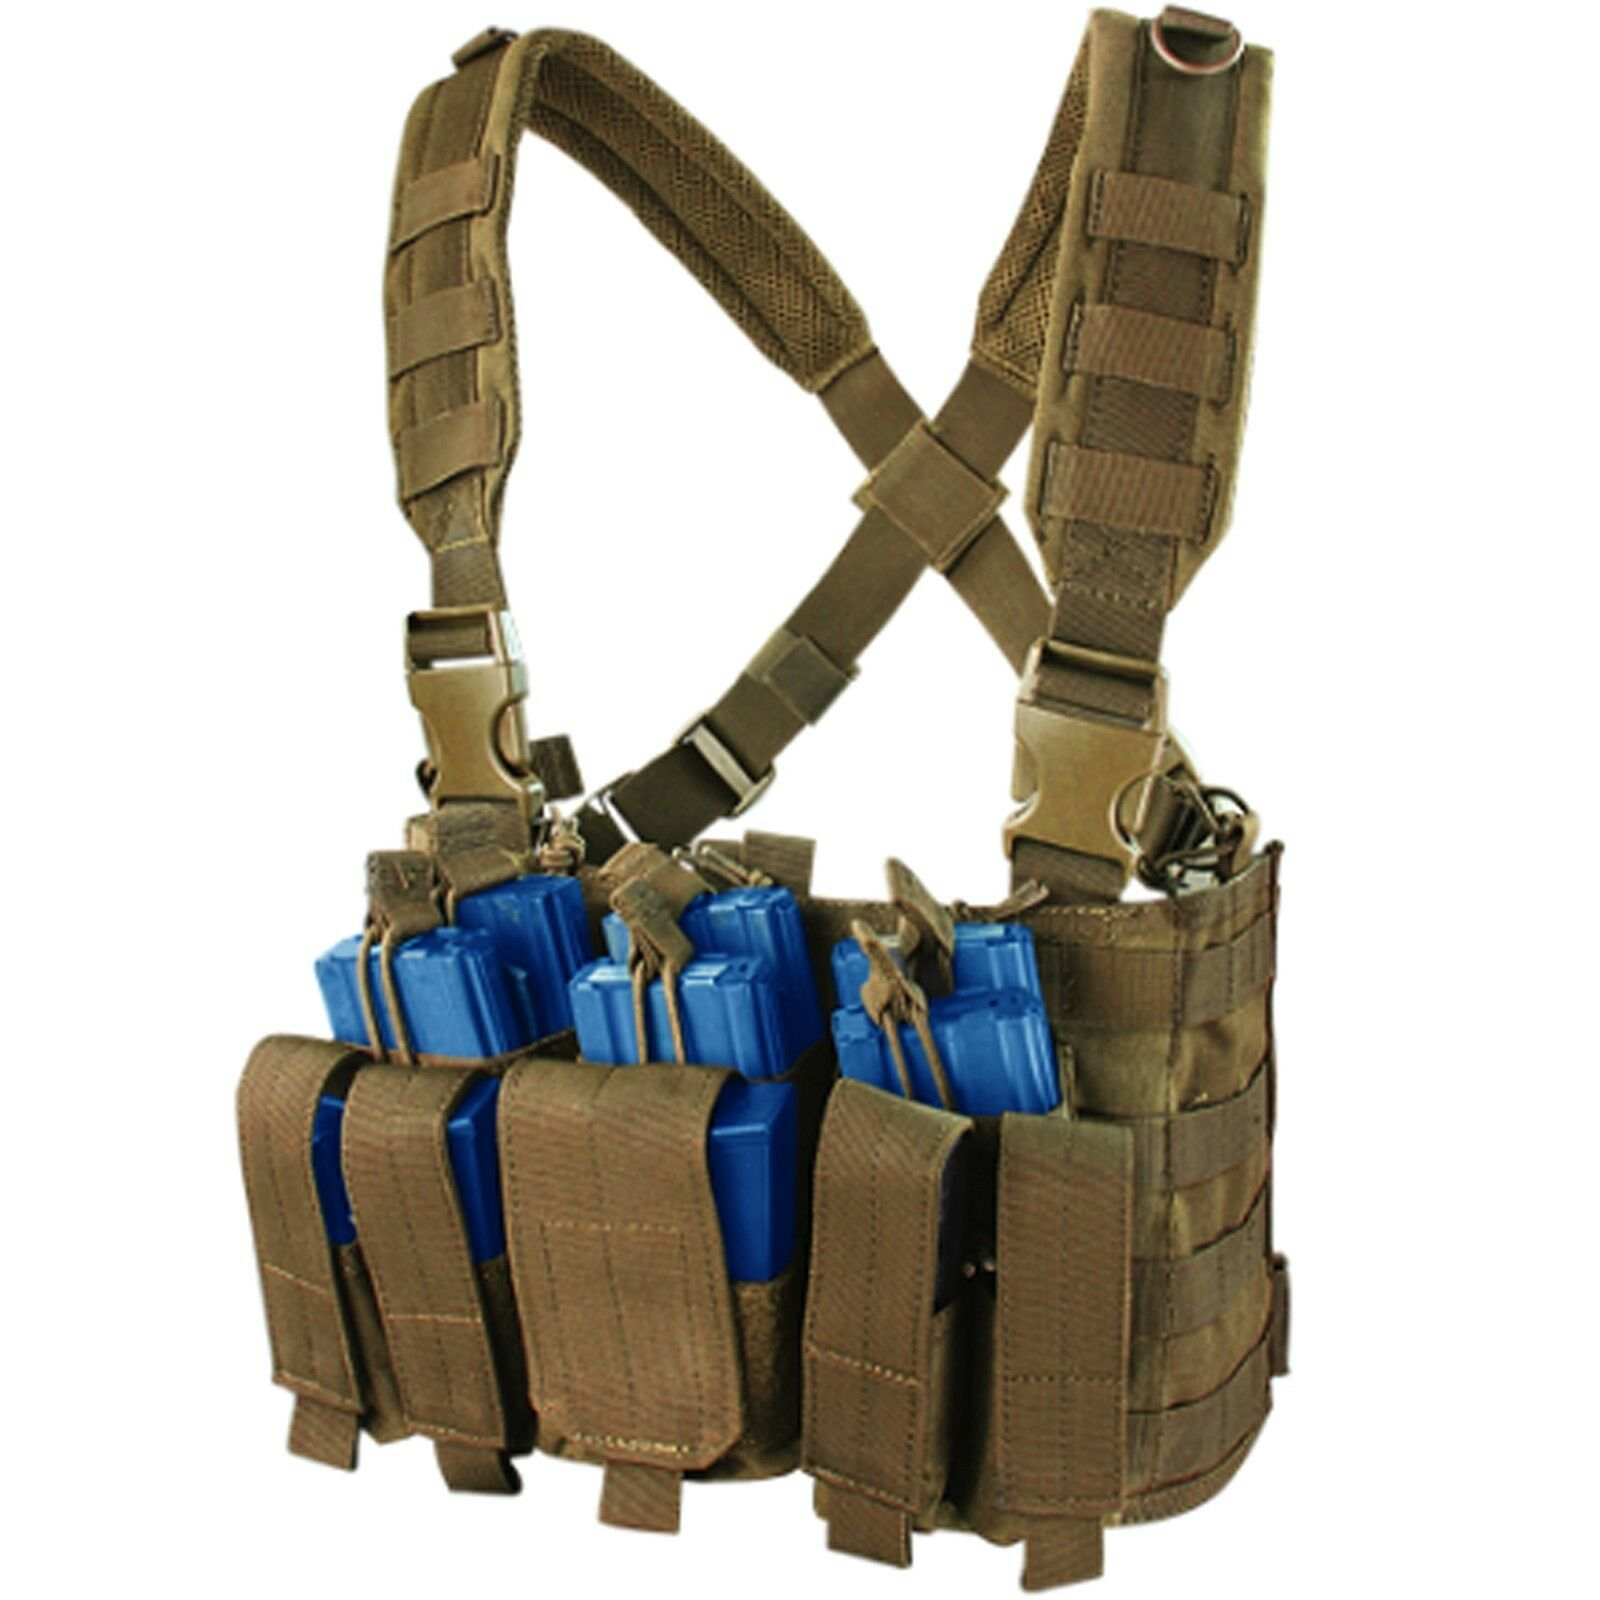 Condor Coyote Brown MCR5 Military Recon Tactical Kangaroo Mag Pouch Chest Rig